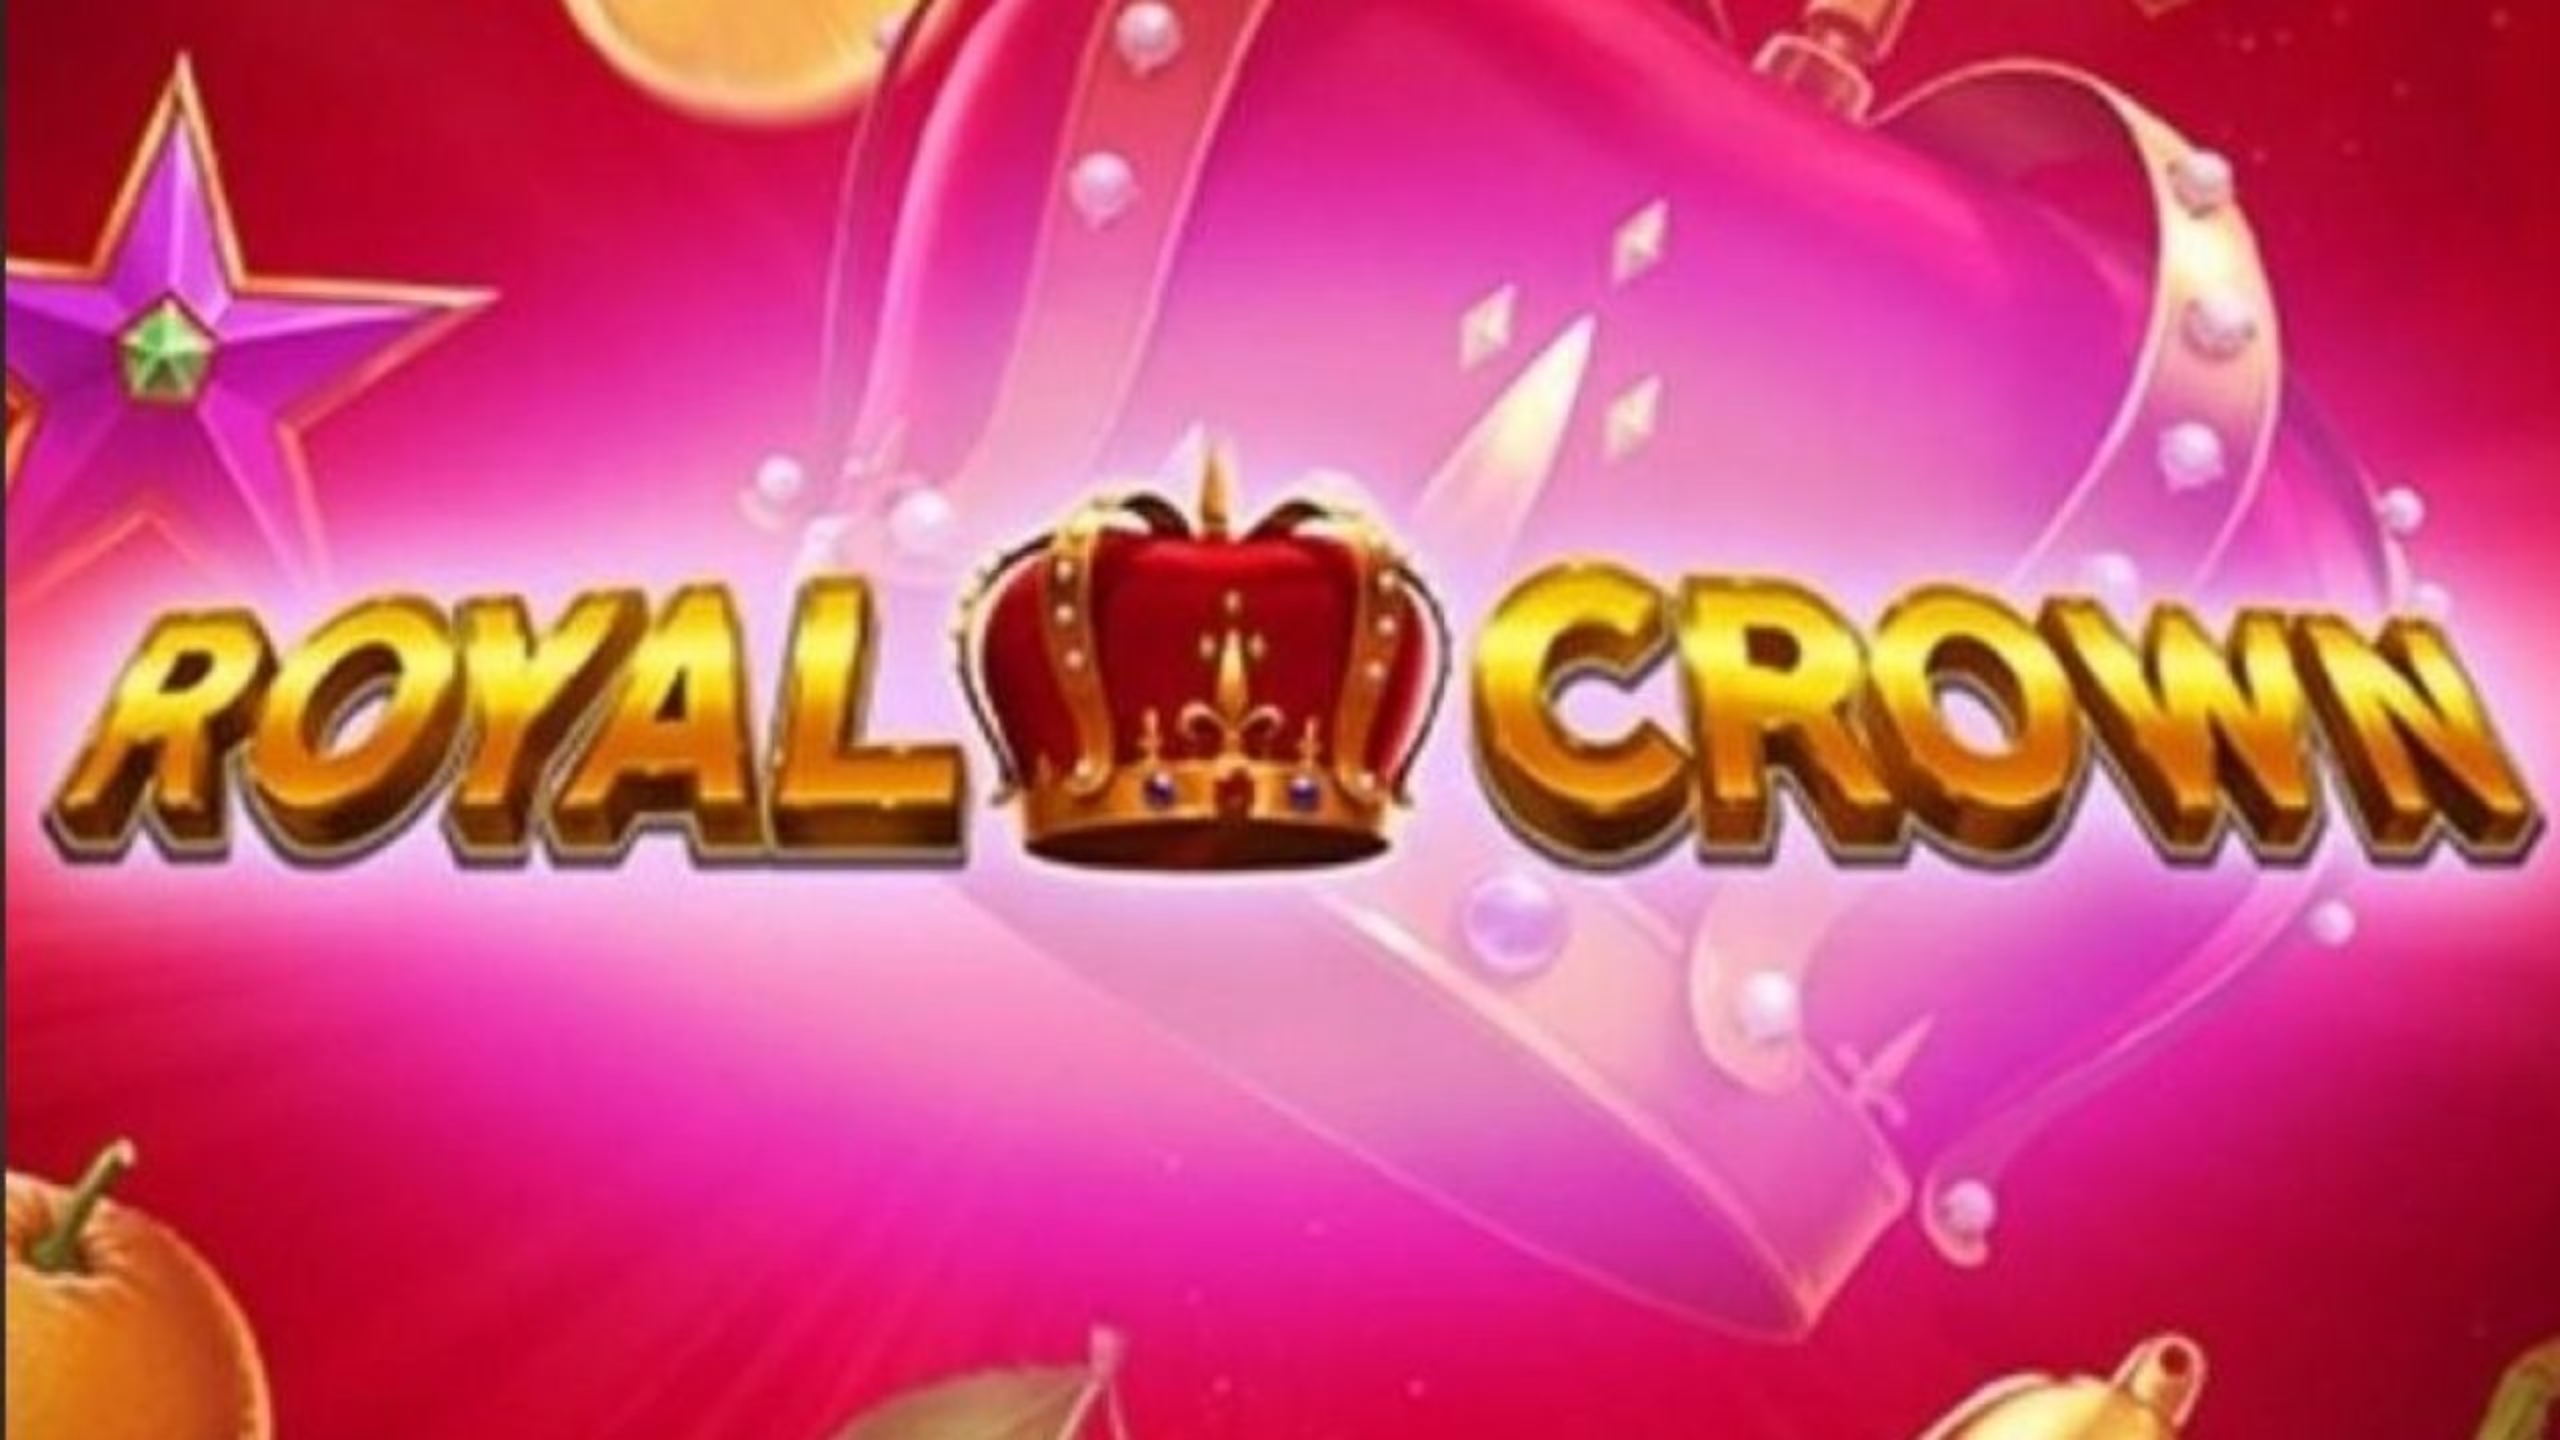 The Royal Crown (Spearhead Studios) Online Slot Demo Game by Spearhead Studios